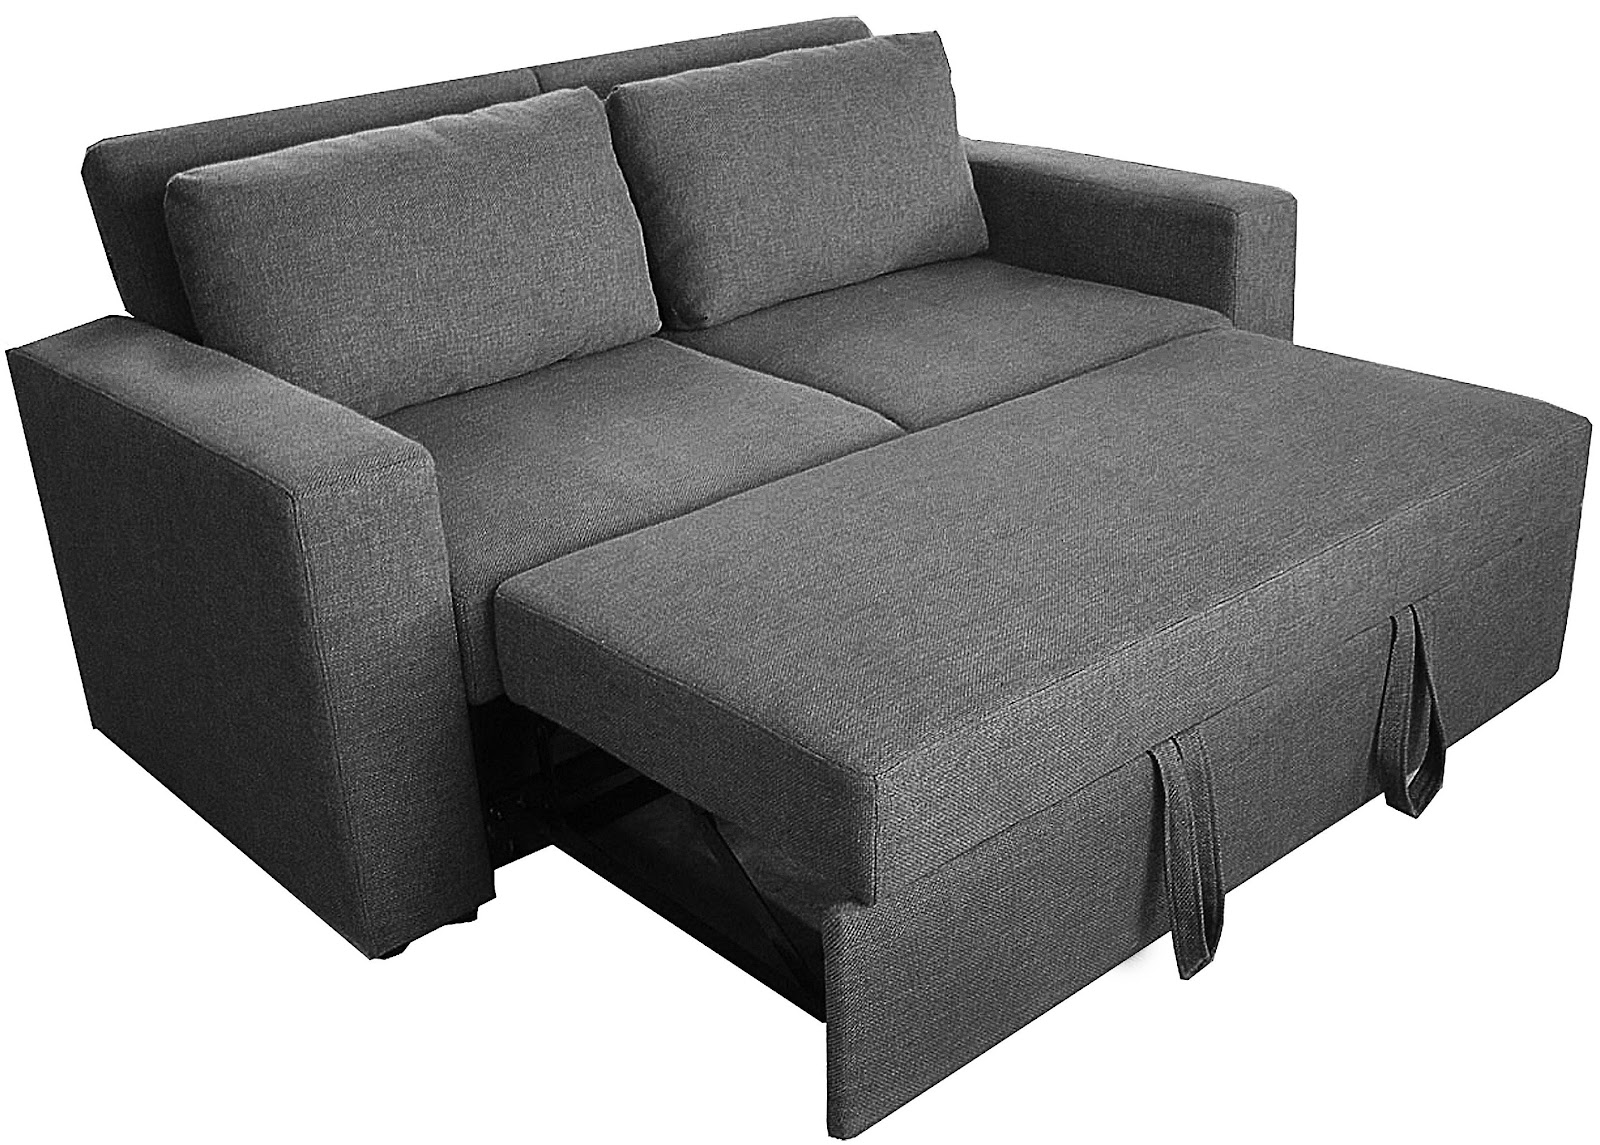 Click Clack Sofa Bed Chair